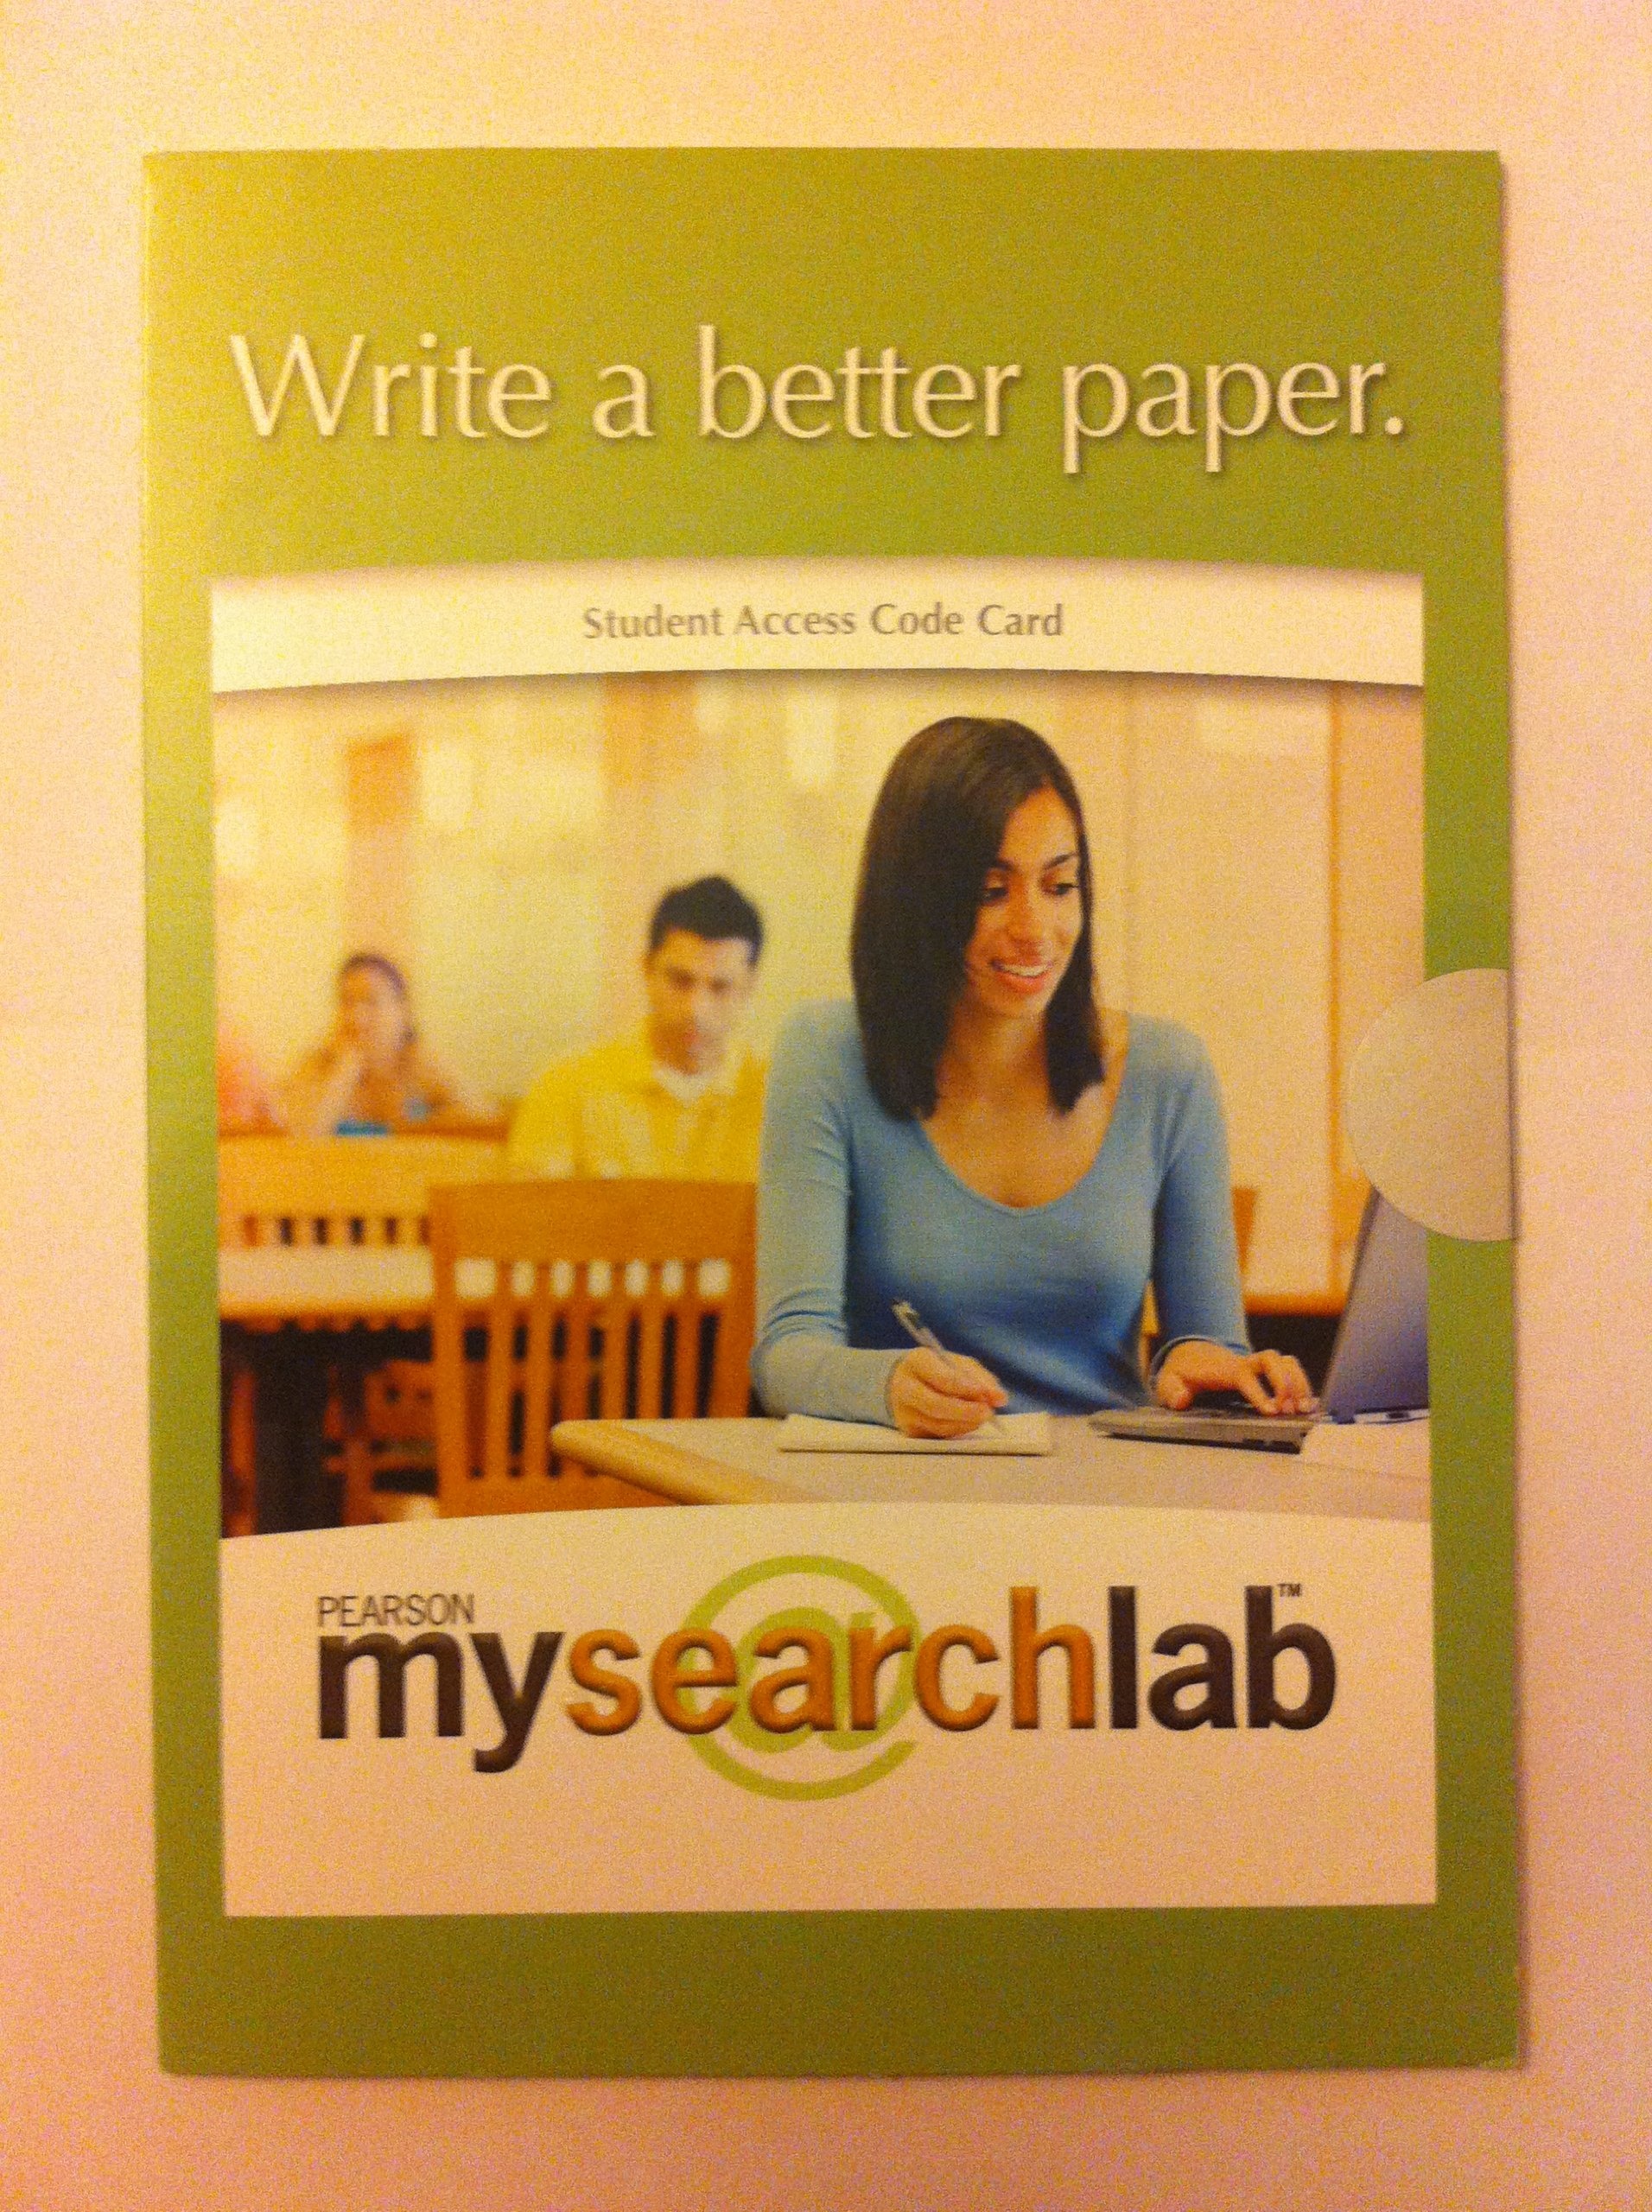 Download Pearson My Search Lab Student Access Code Card PDF